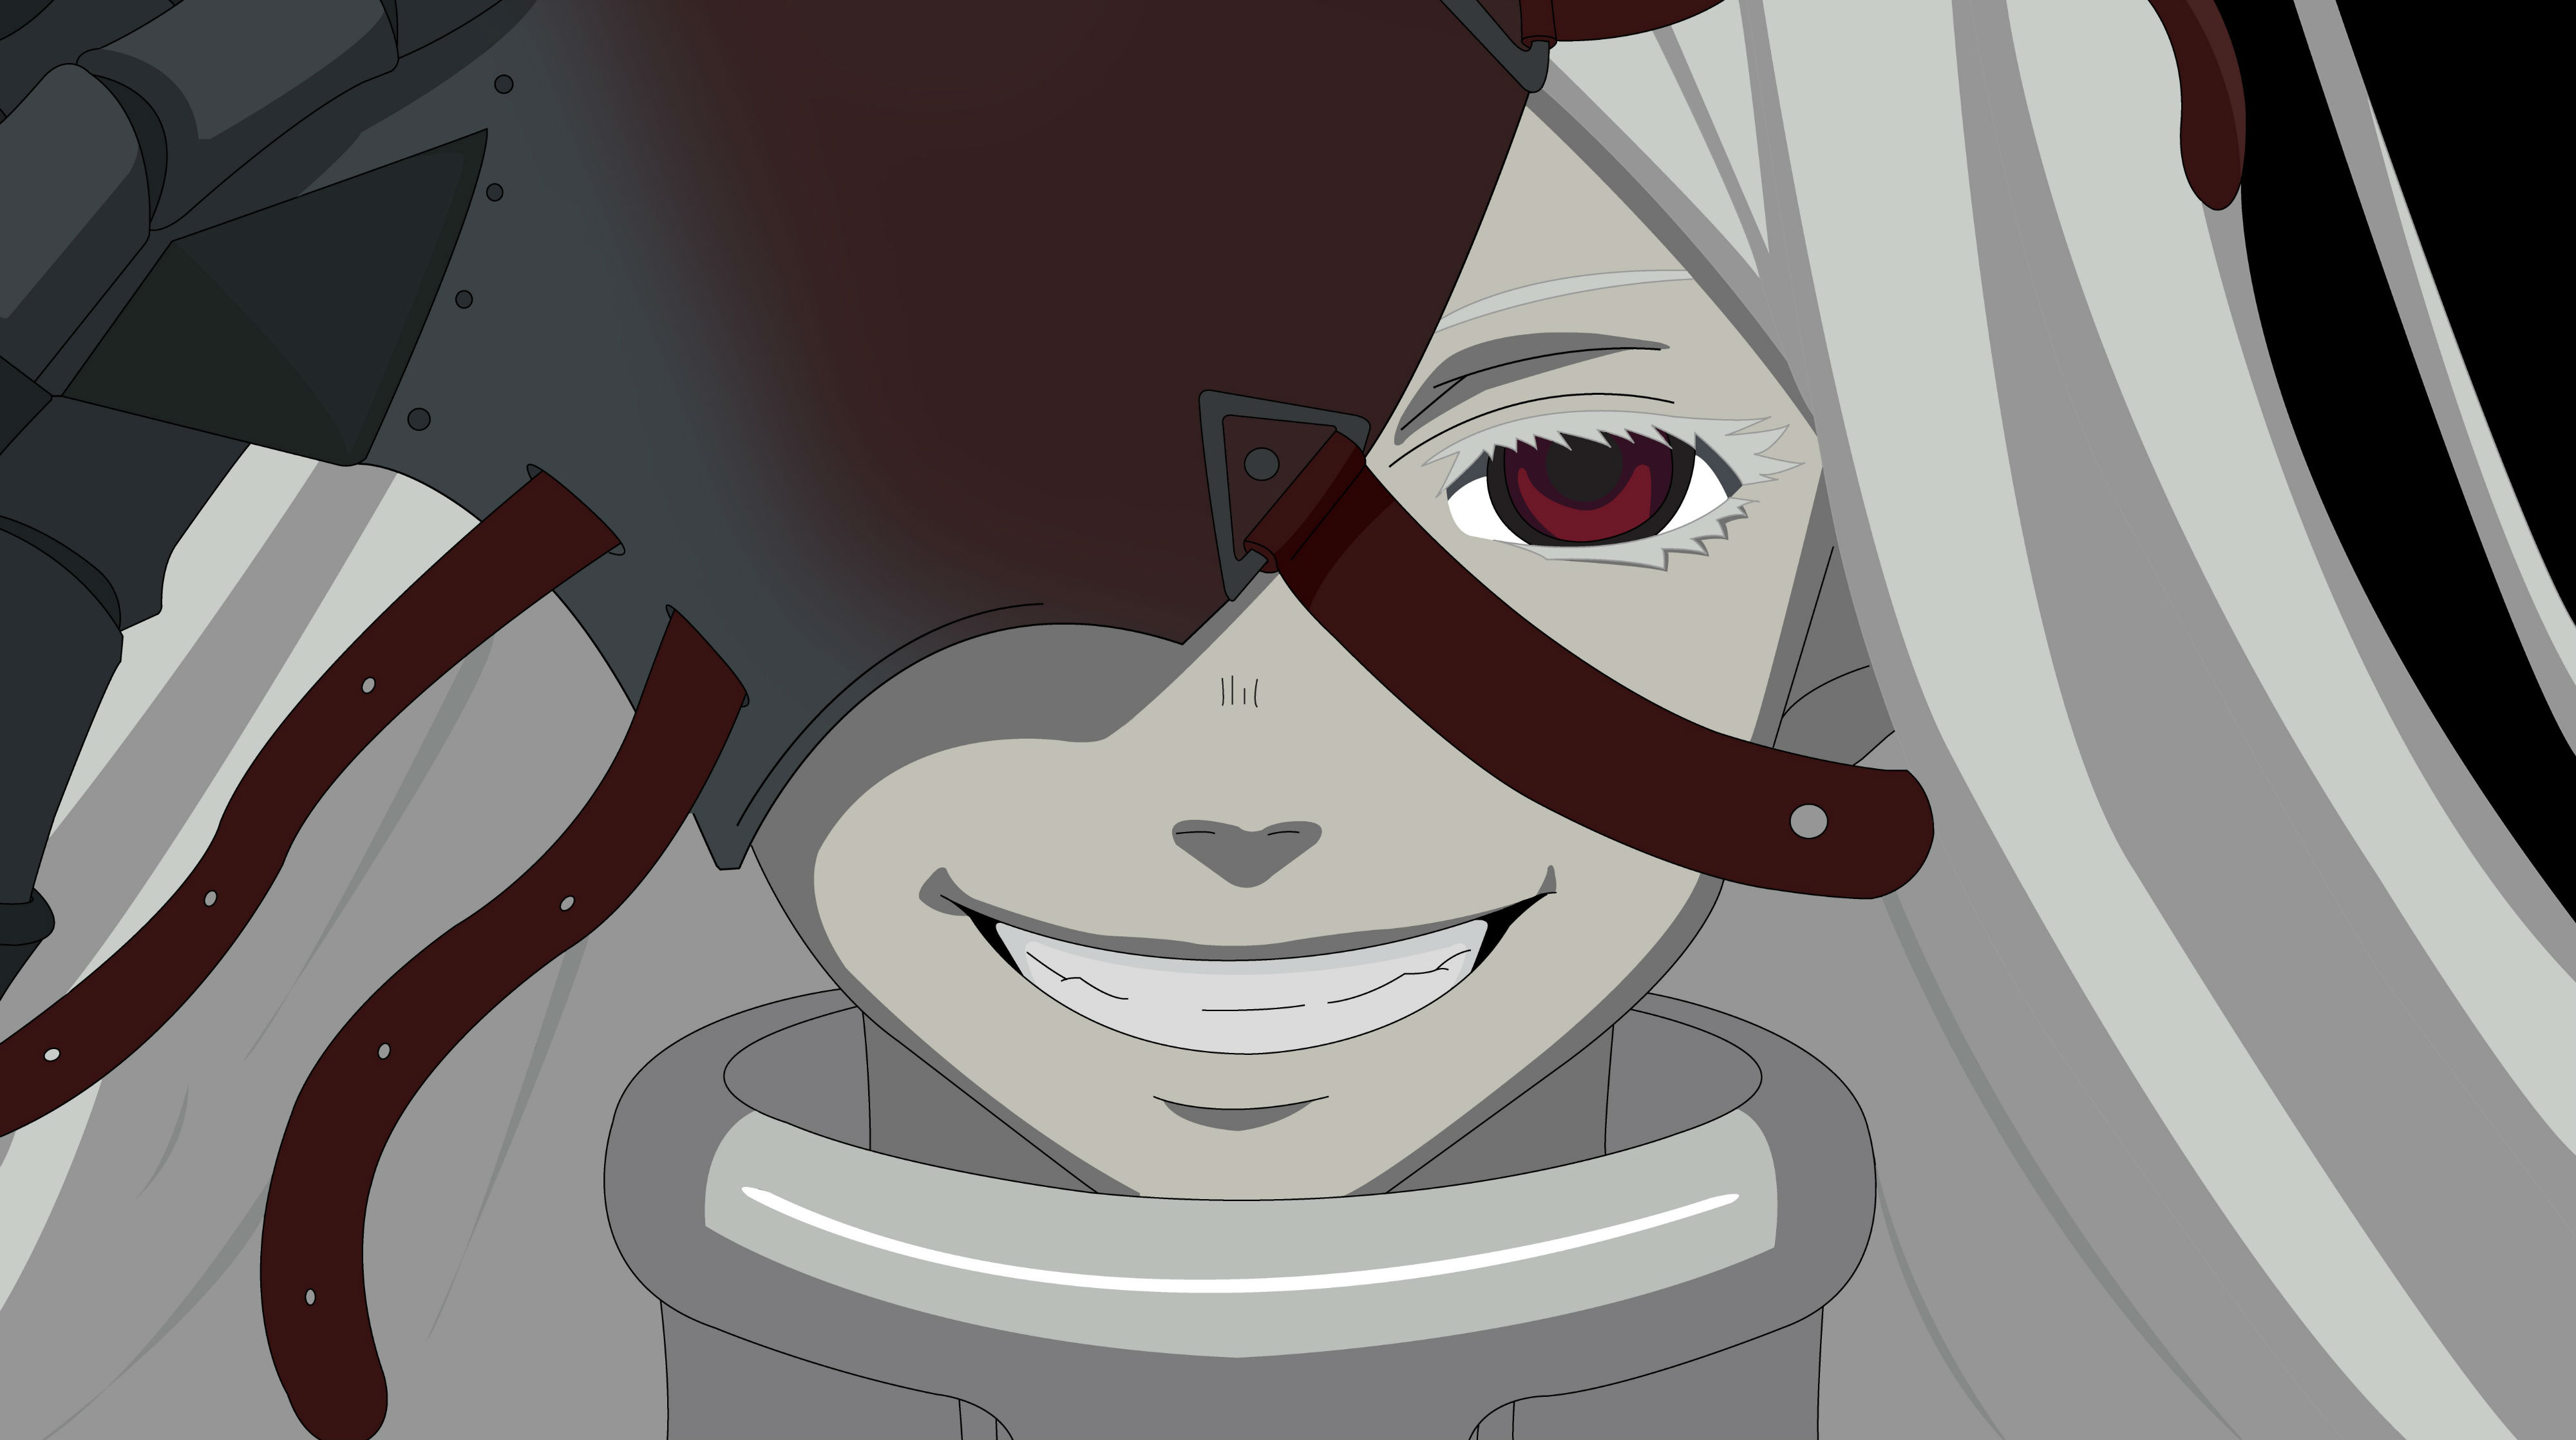 Anime - Deadman Wonderland  Shiro (Deadman Wonderland) Wallpaper